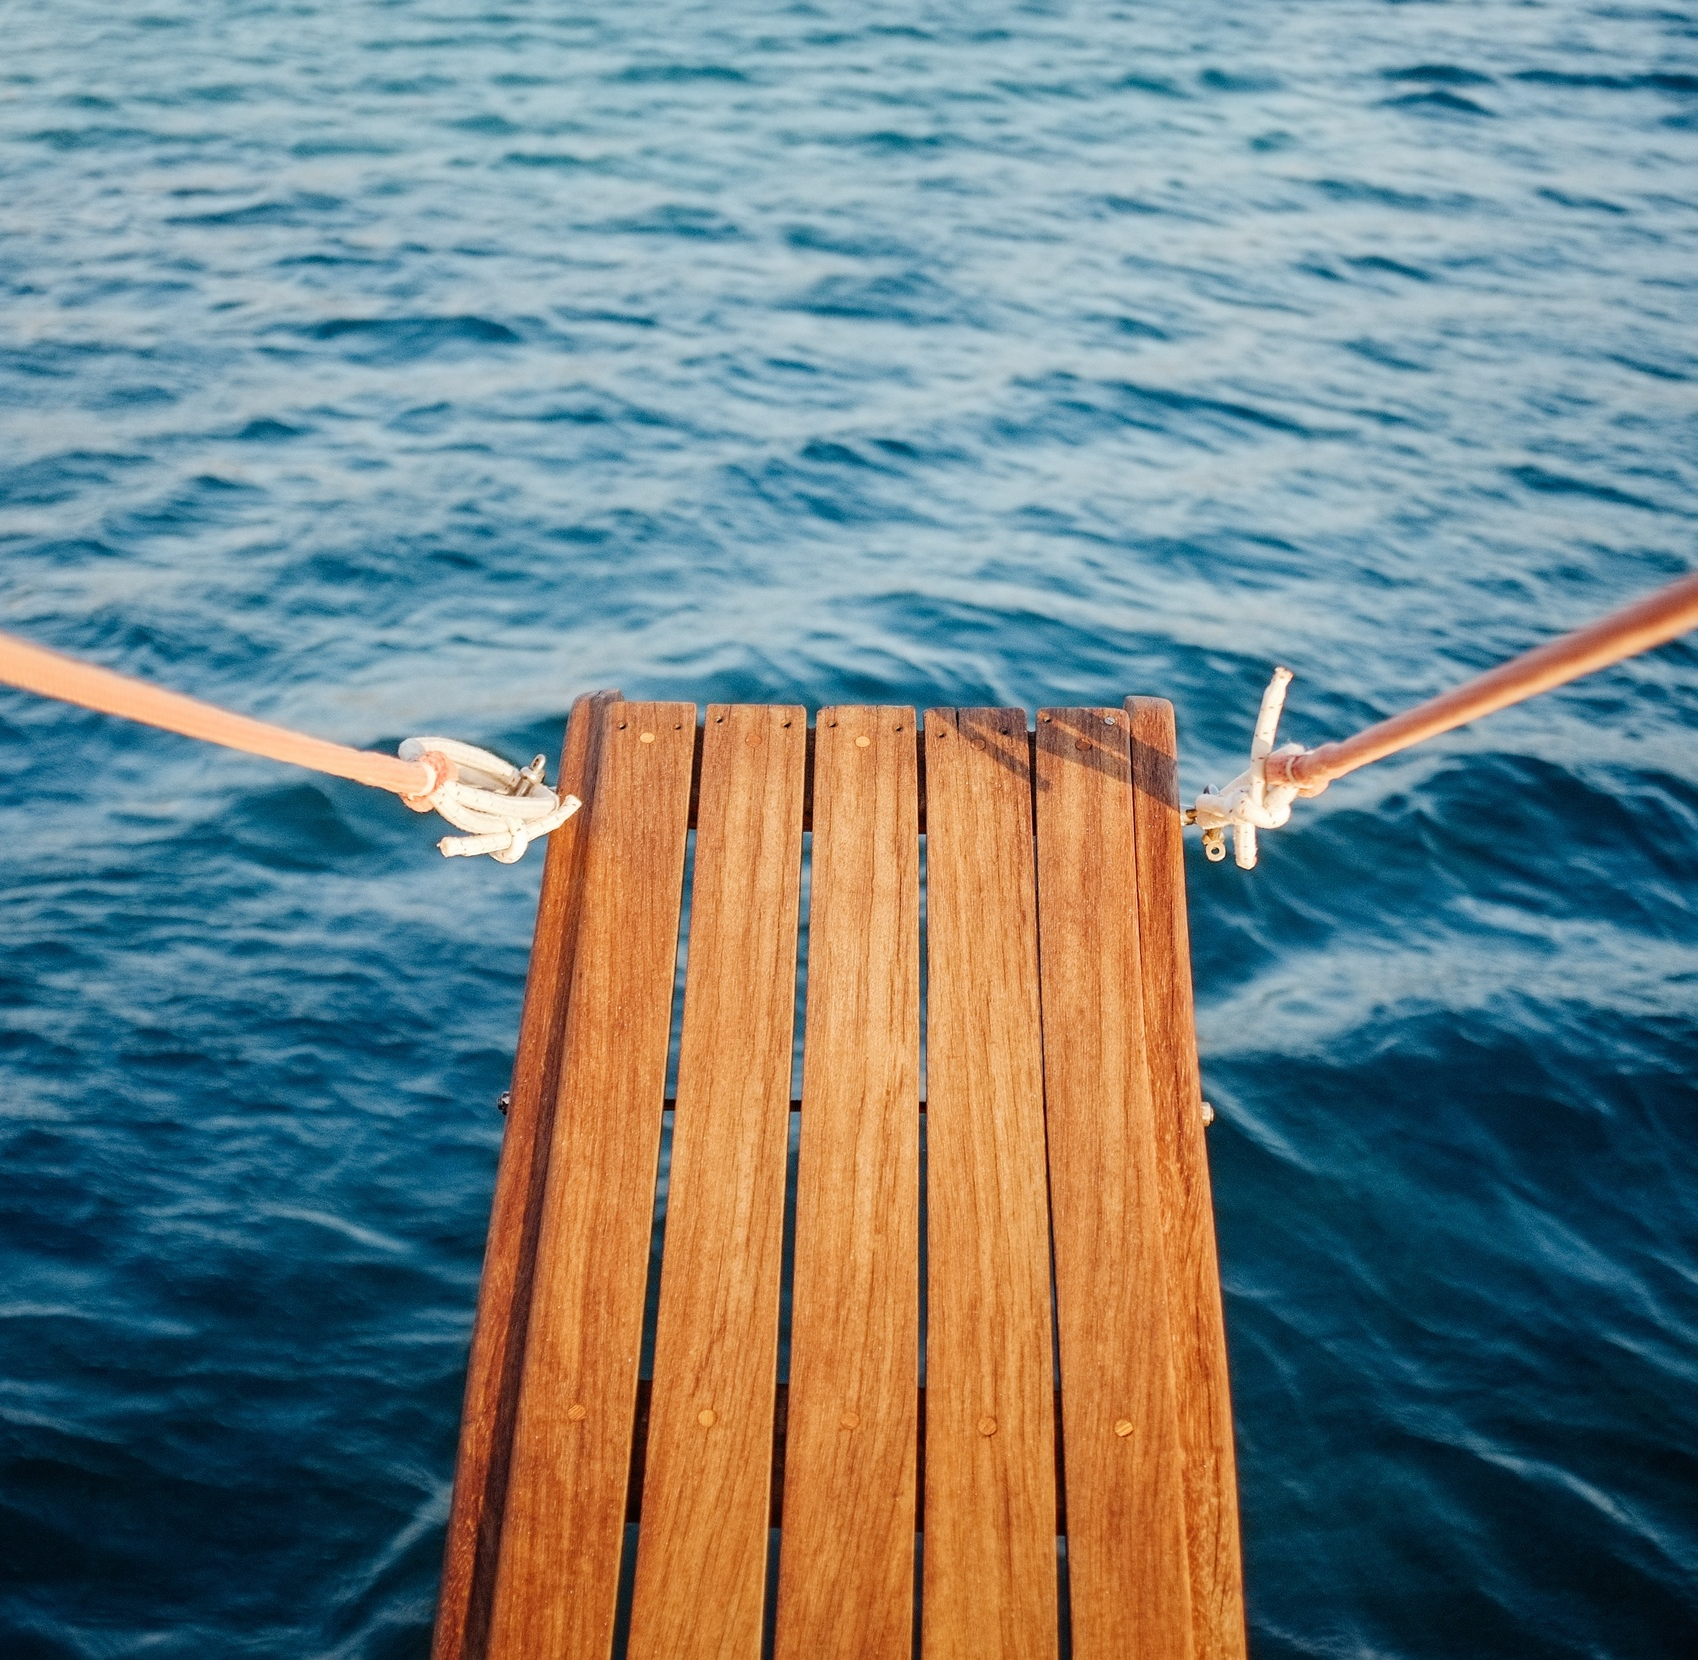 The fear that hugely defined my life - aquaphobia:fear of water.